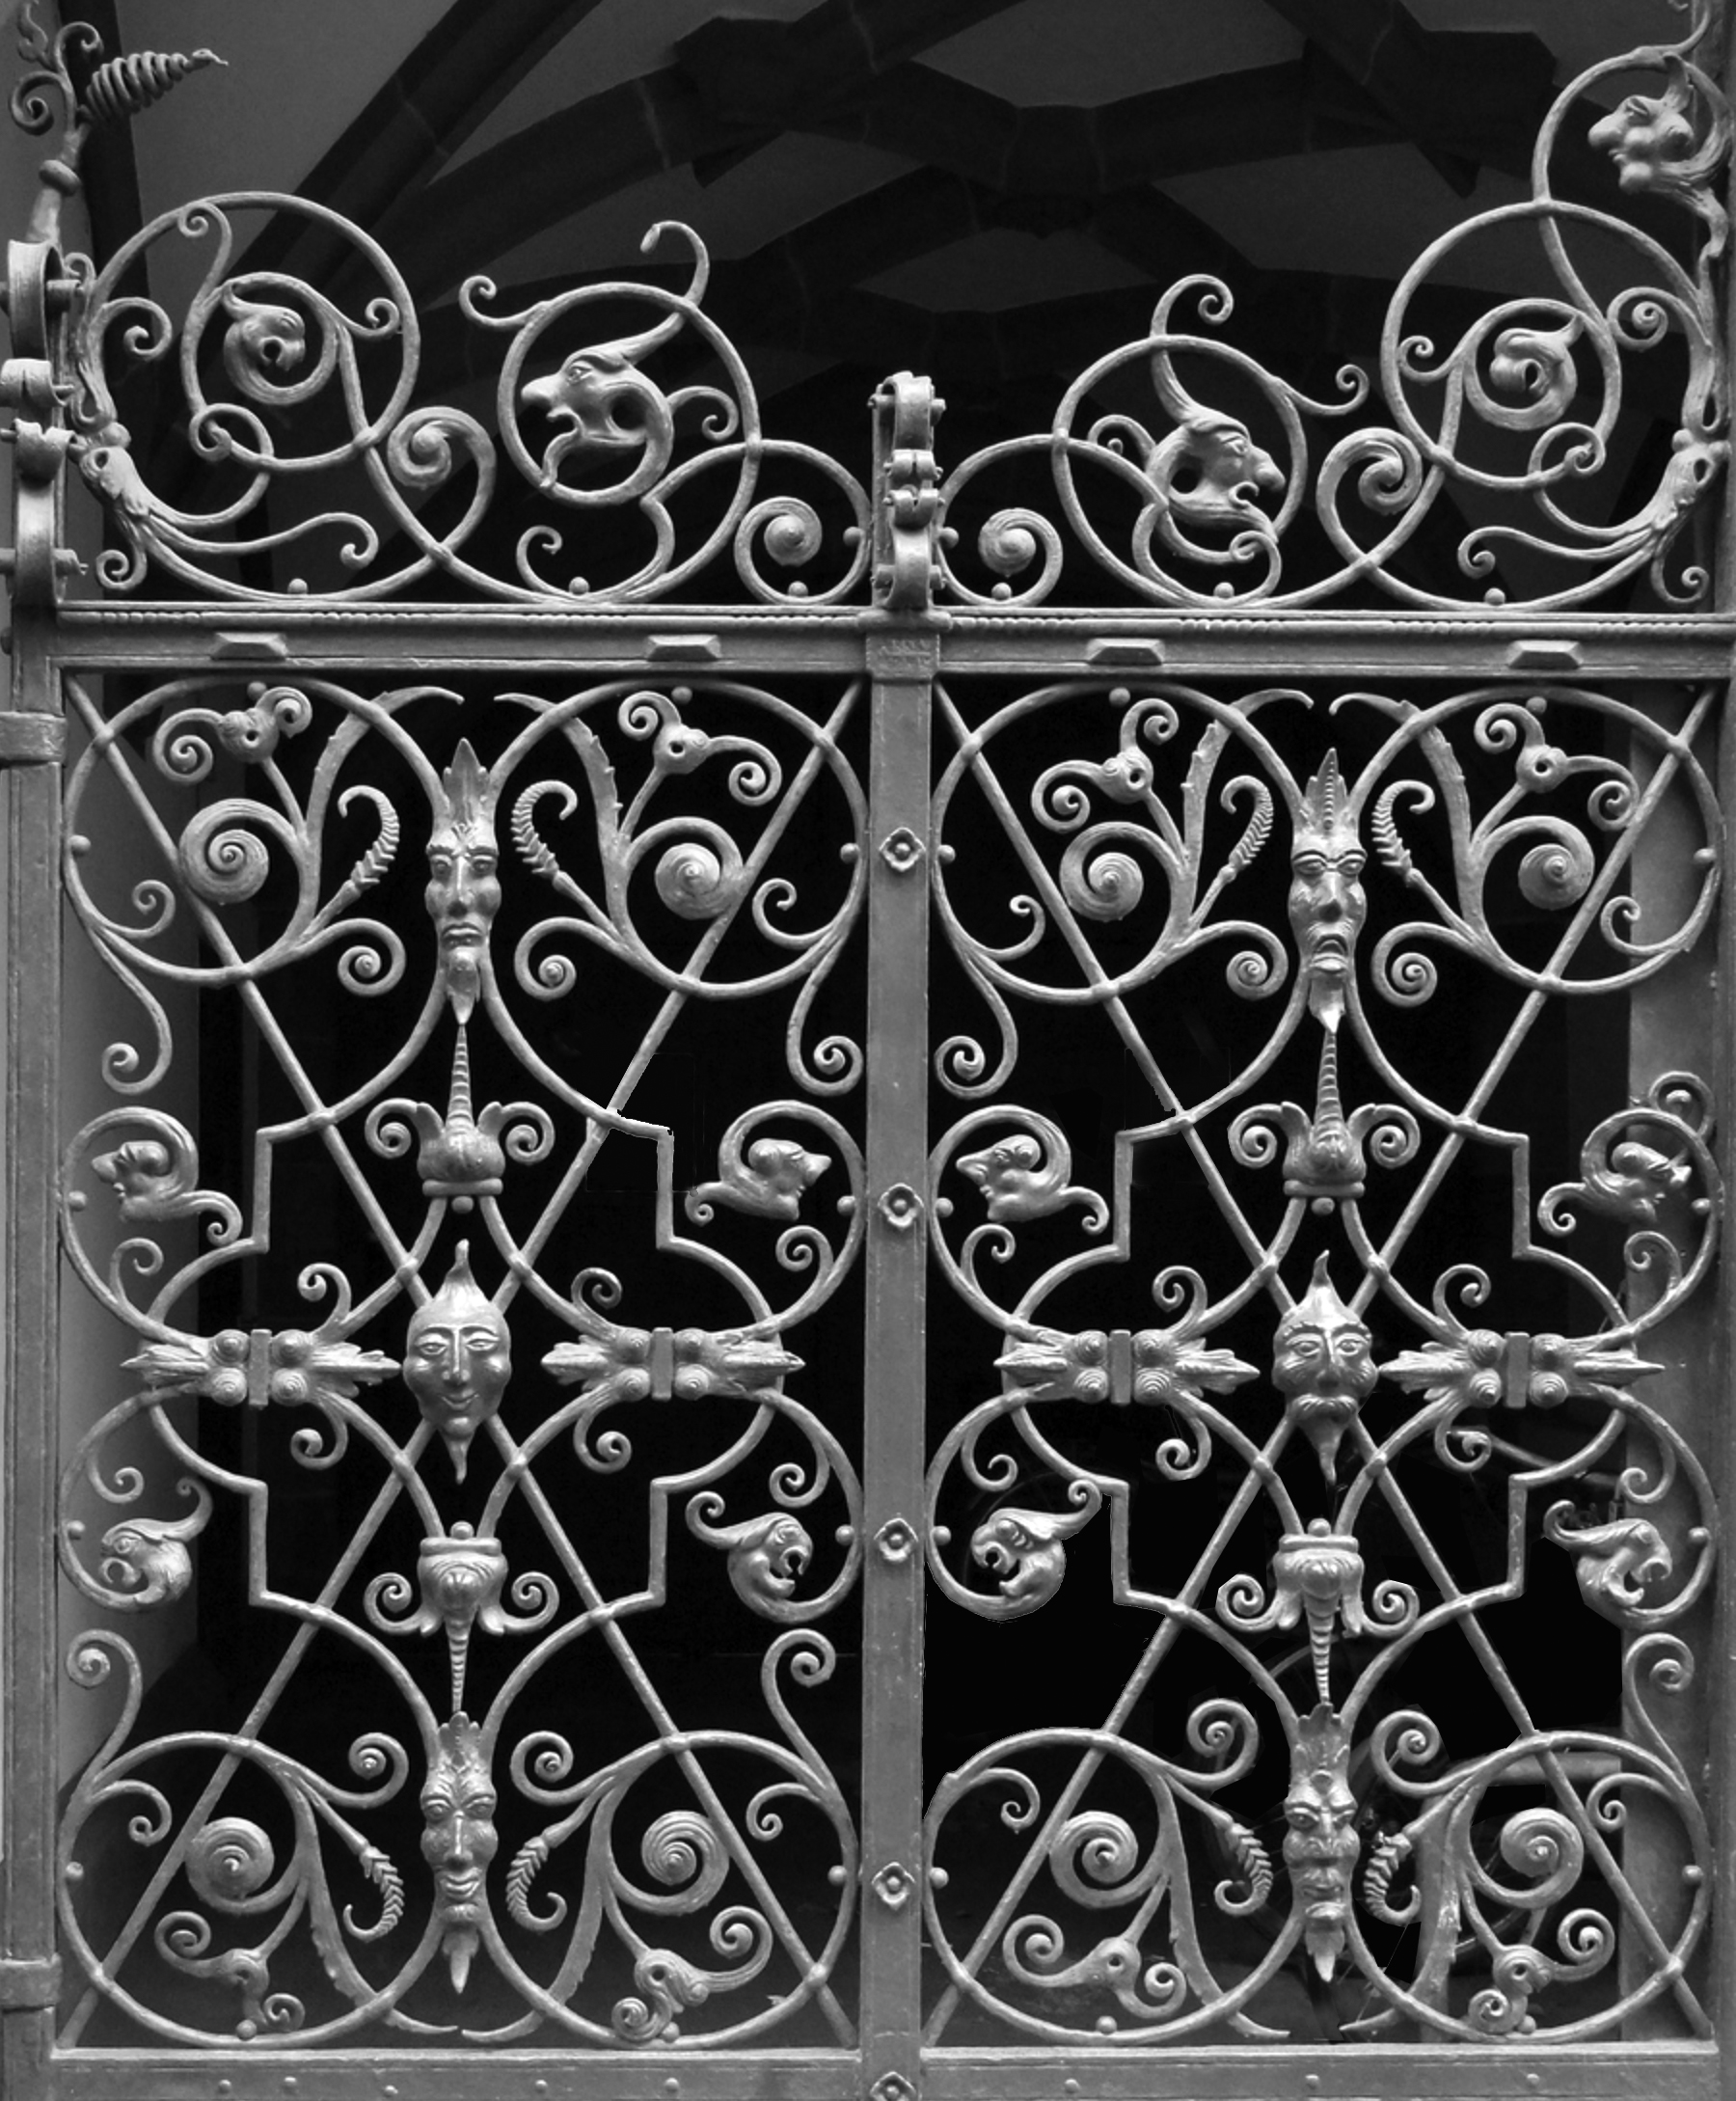 Frankfurt ratskeller side gate (detail)